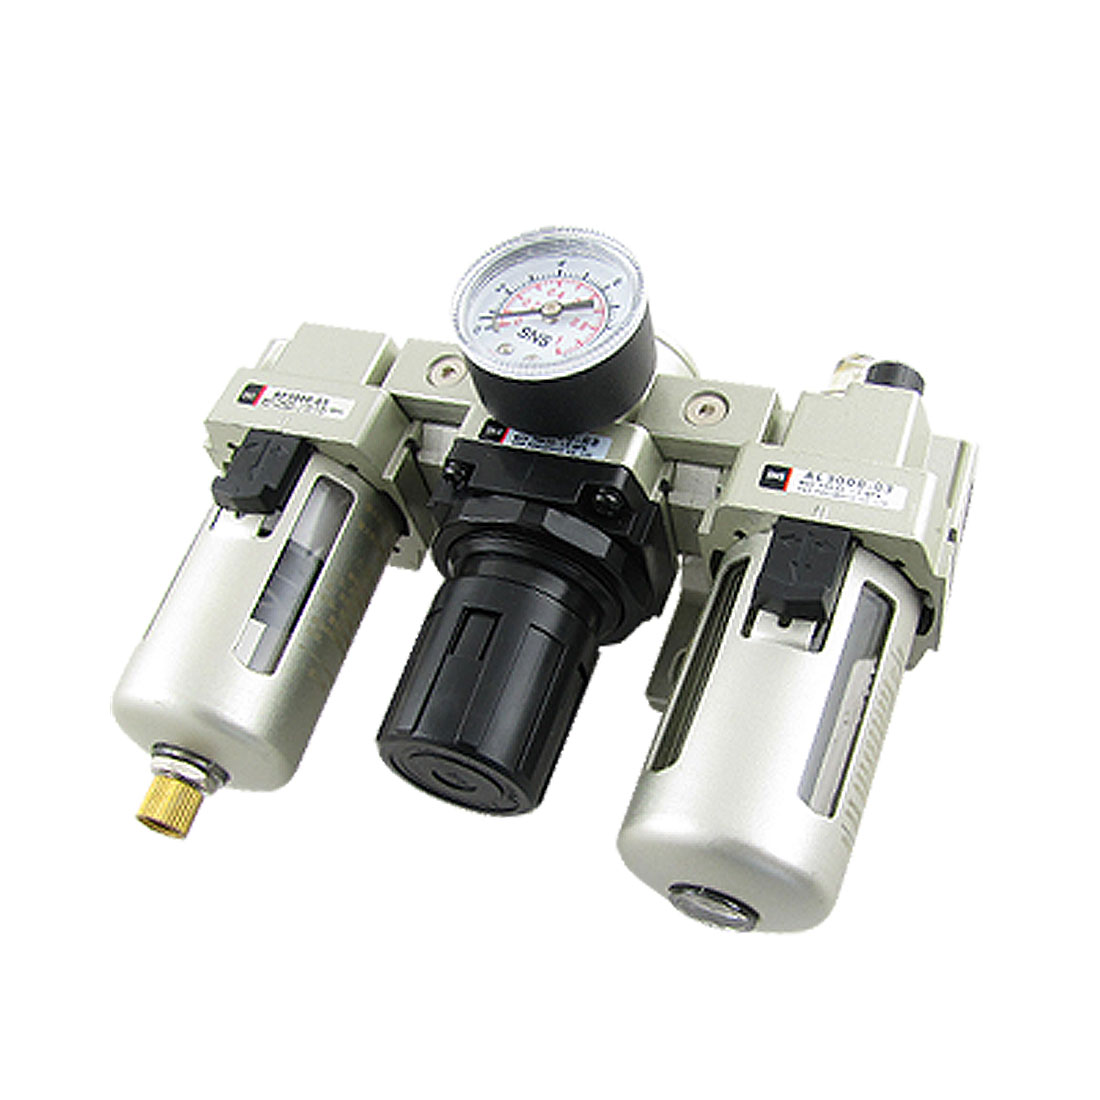 AC3000-03 Pneumatic Air Filter Regulator Lubricator